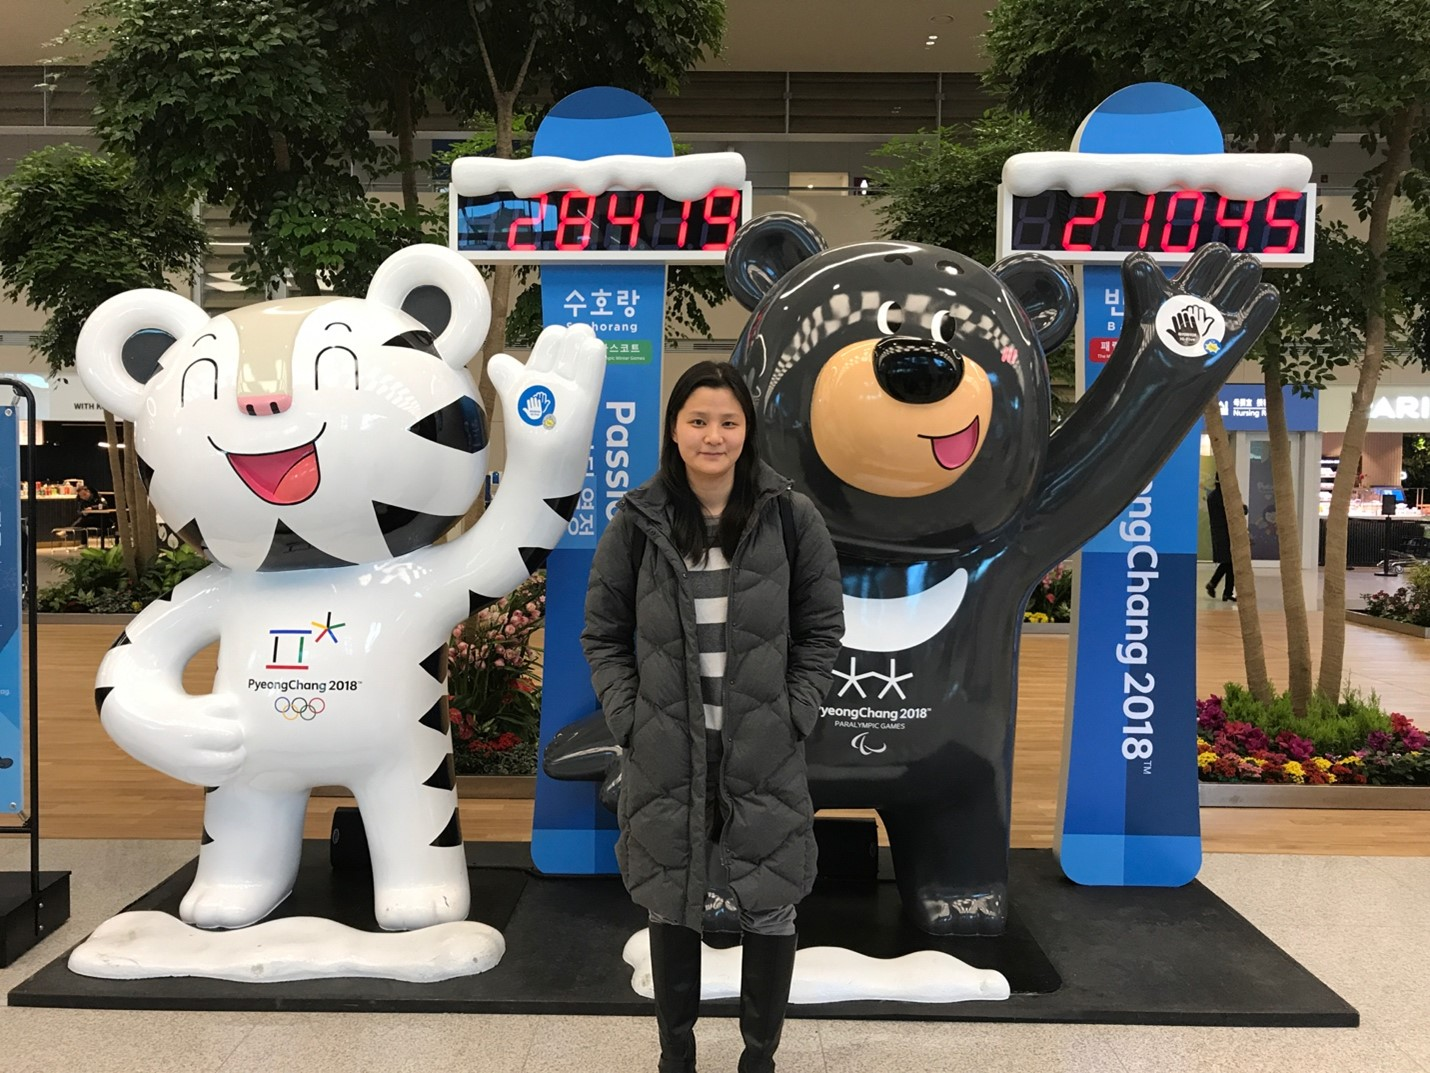 person standing in front of Olympic character